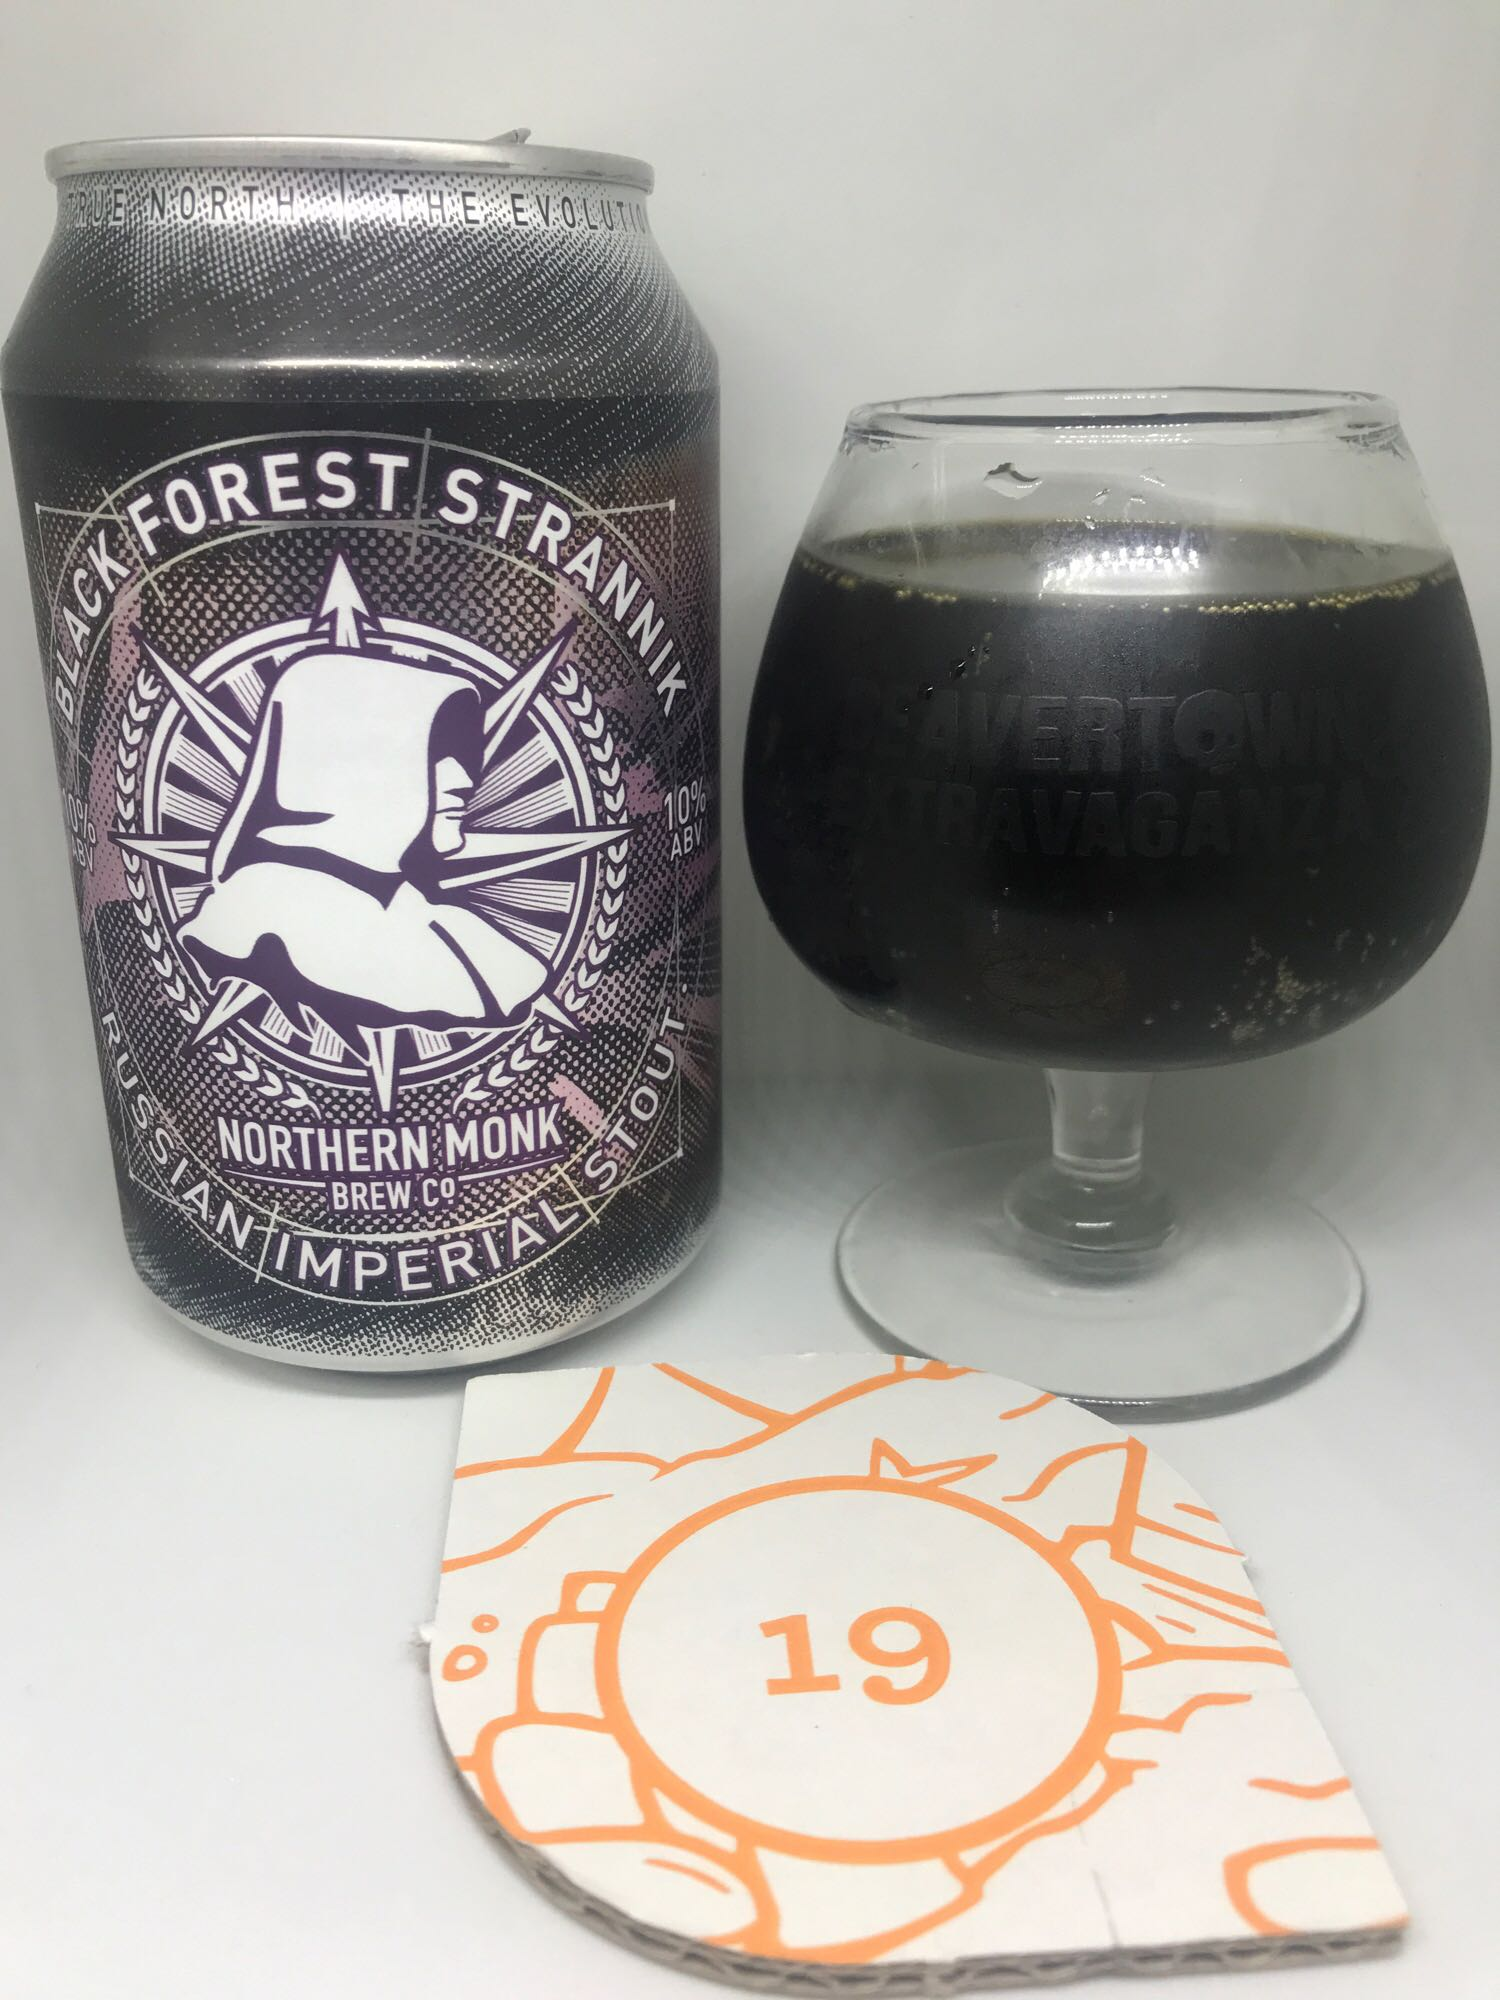 Day Nineteen: Black Forest Strannik  - Russian Imperial Stout 10% // Northern Monk - What a beautiful beer. I'm yet to have the regular Strannik but this version is up there with any of Northern Monk's beers. Inspired by a Black Forest Gateau, this beer is an excellent beer for a nightcap. There's an abundance of chocolate, vanilla and cherry here all rounded off with the bitterness you'd expect from a stout. I don't really want to wax lyrical about this beer anymore than I have for two reasons:1. I'm halfway through the can and am struggling to find the words. 2. I want to enjoy the rest of it in peace. Do yourself a favour and grab a can if you see one.